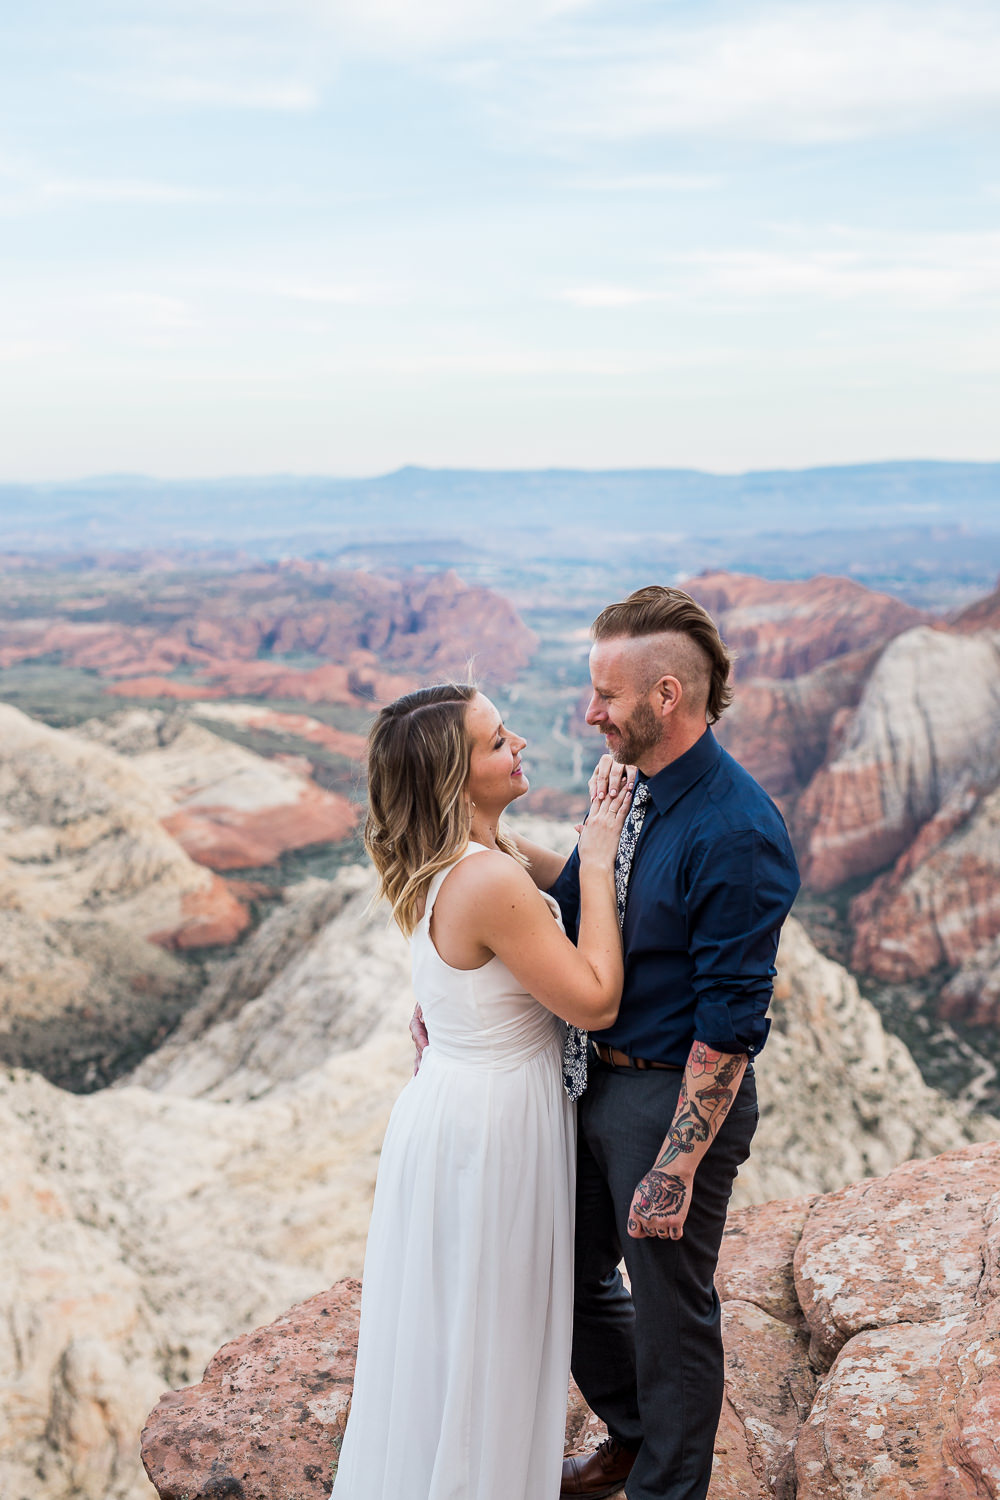 Emotional vow renewal near Zion National Park Kyle Loves Tori